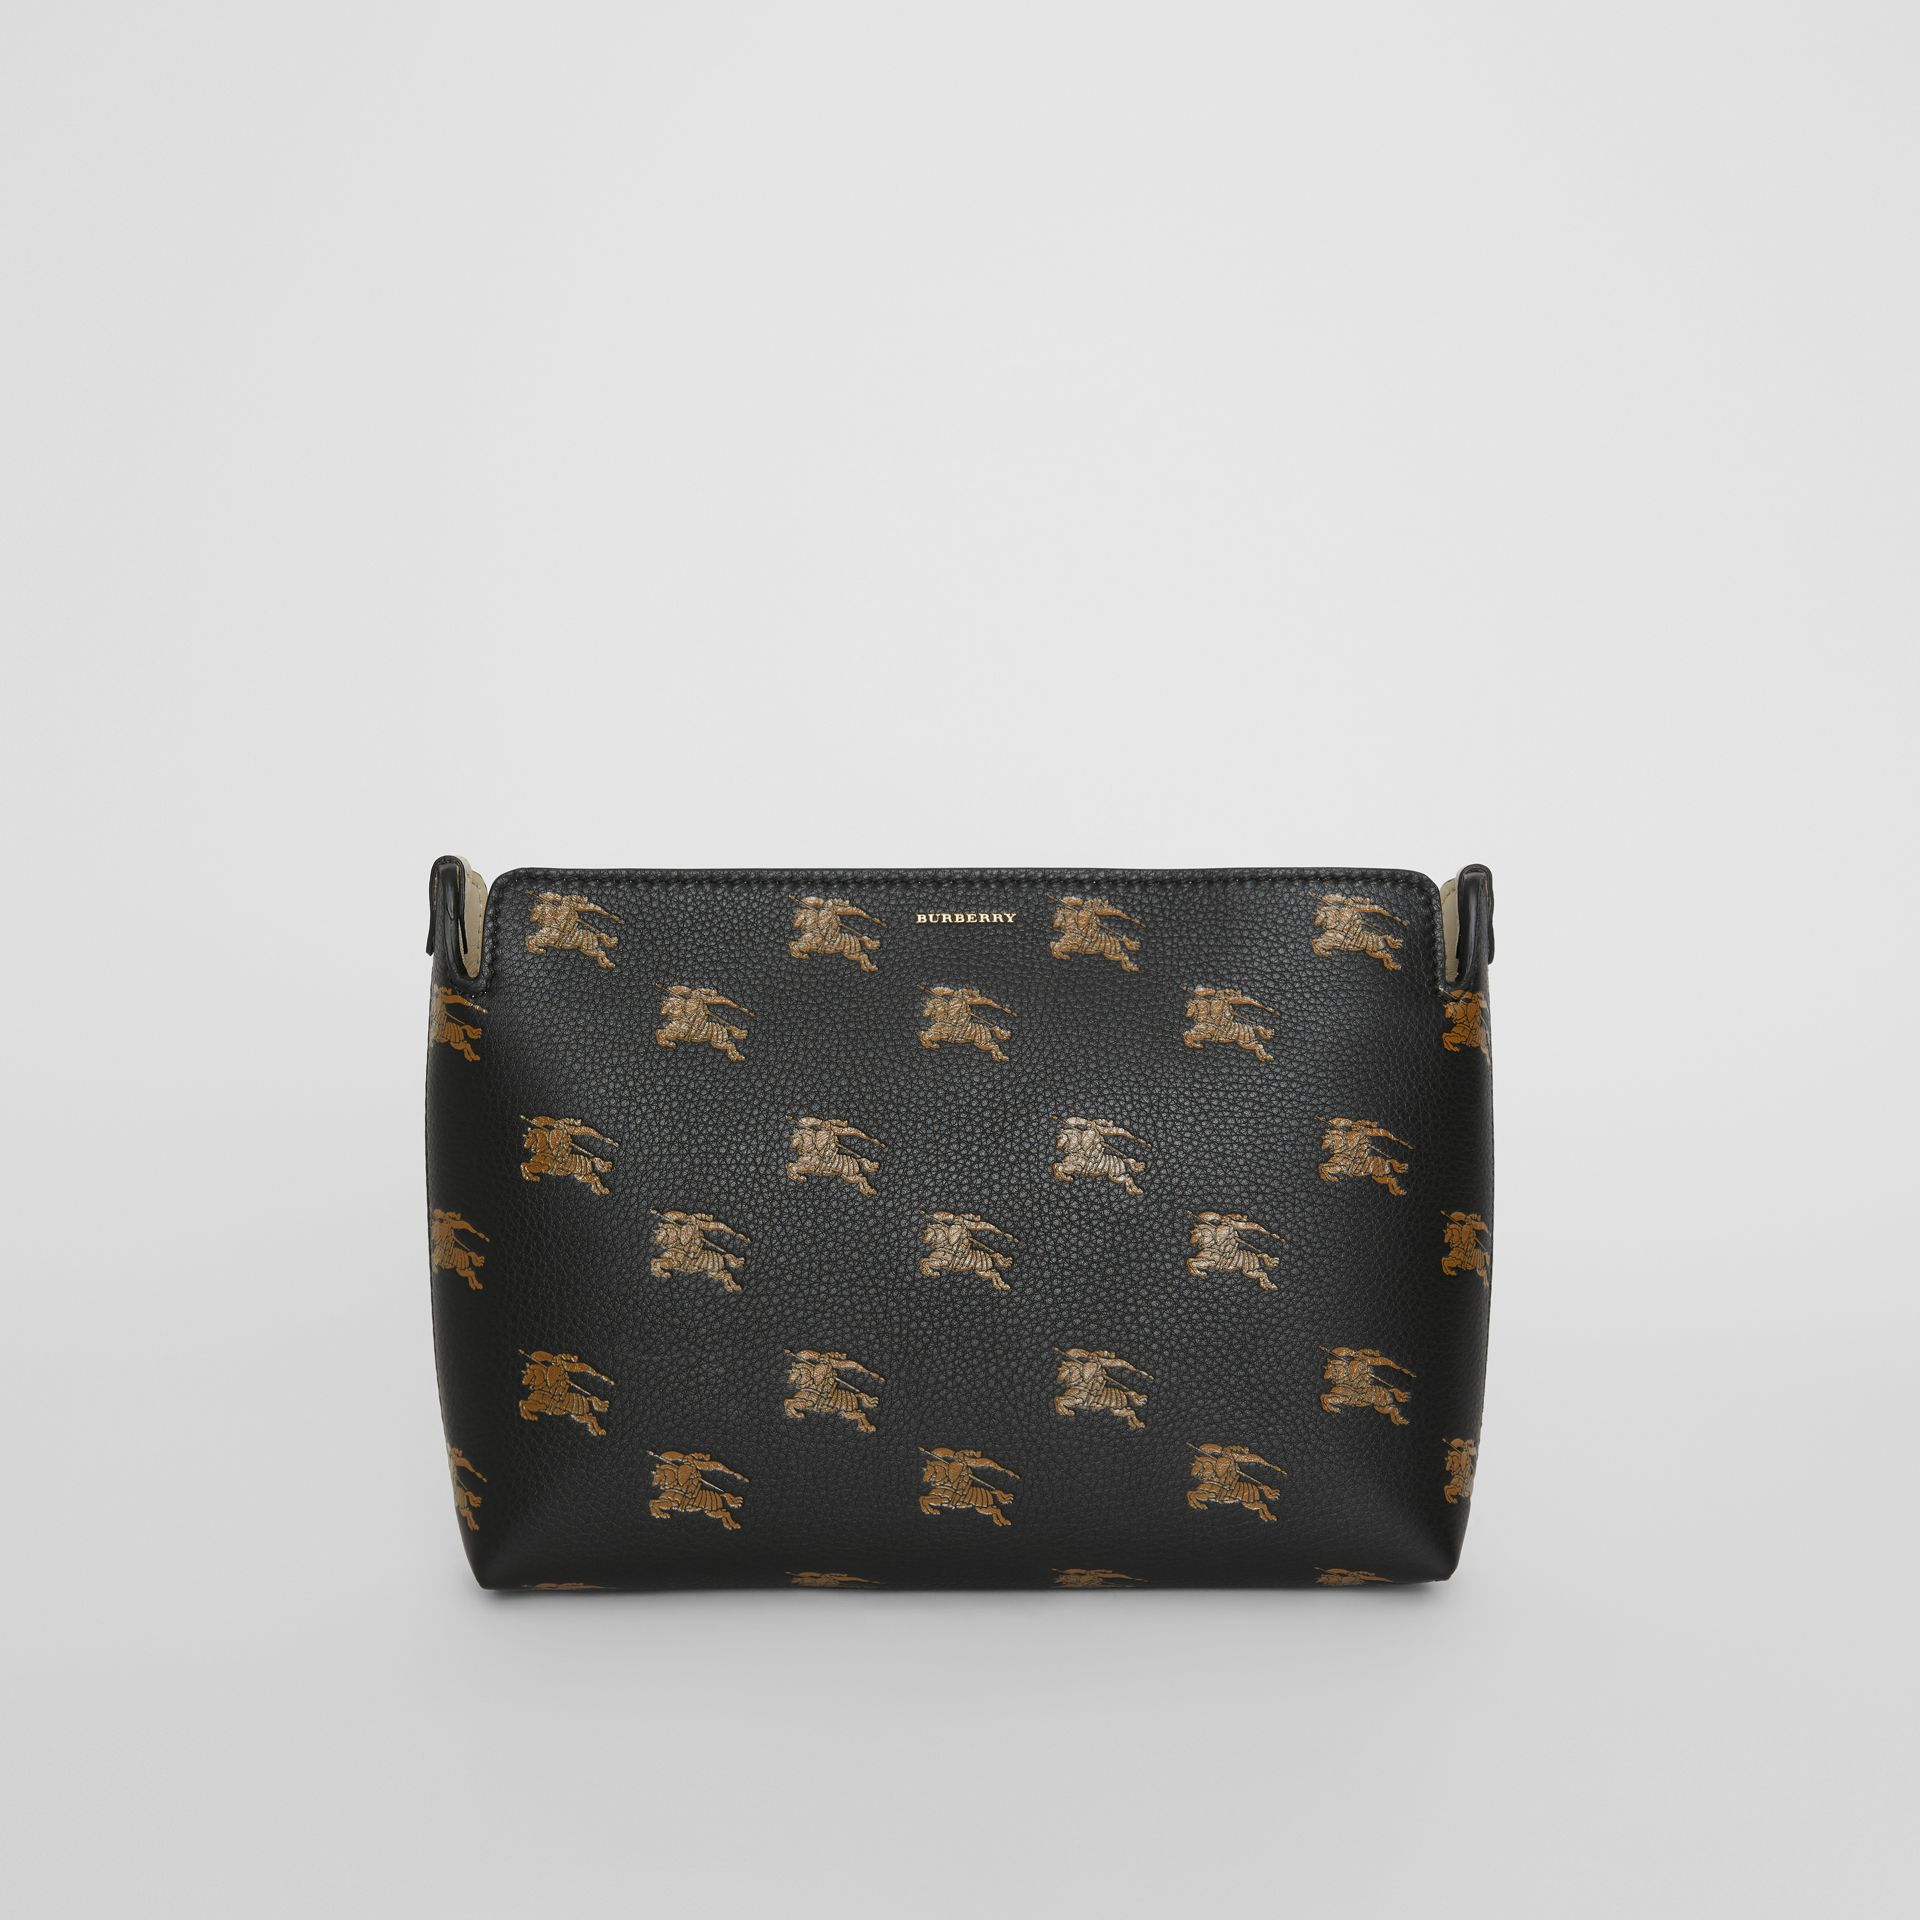 Medium Equestrian Knight Leather Clutch in Black - Women | Burberry Australia - gallery image 0